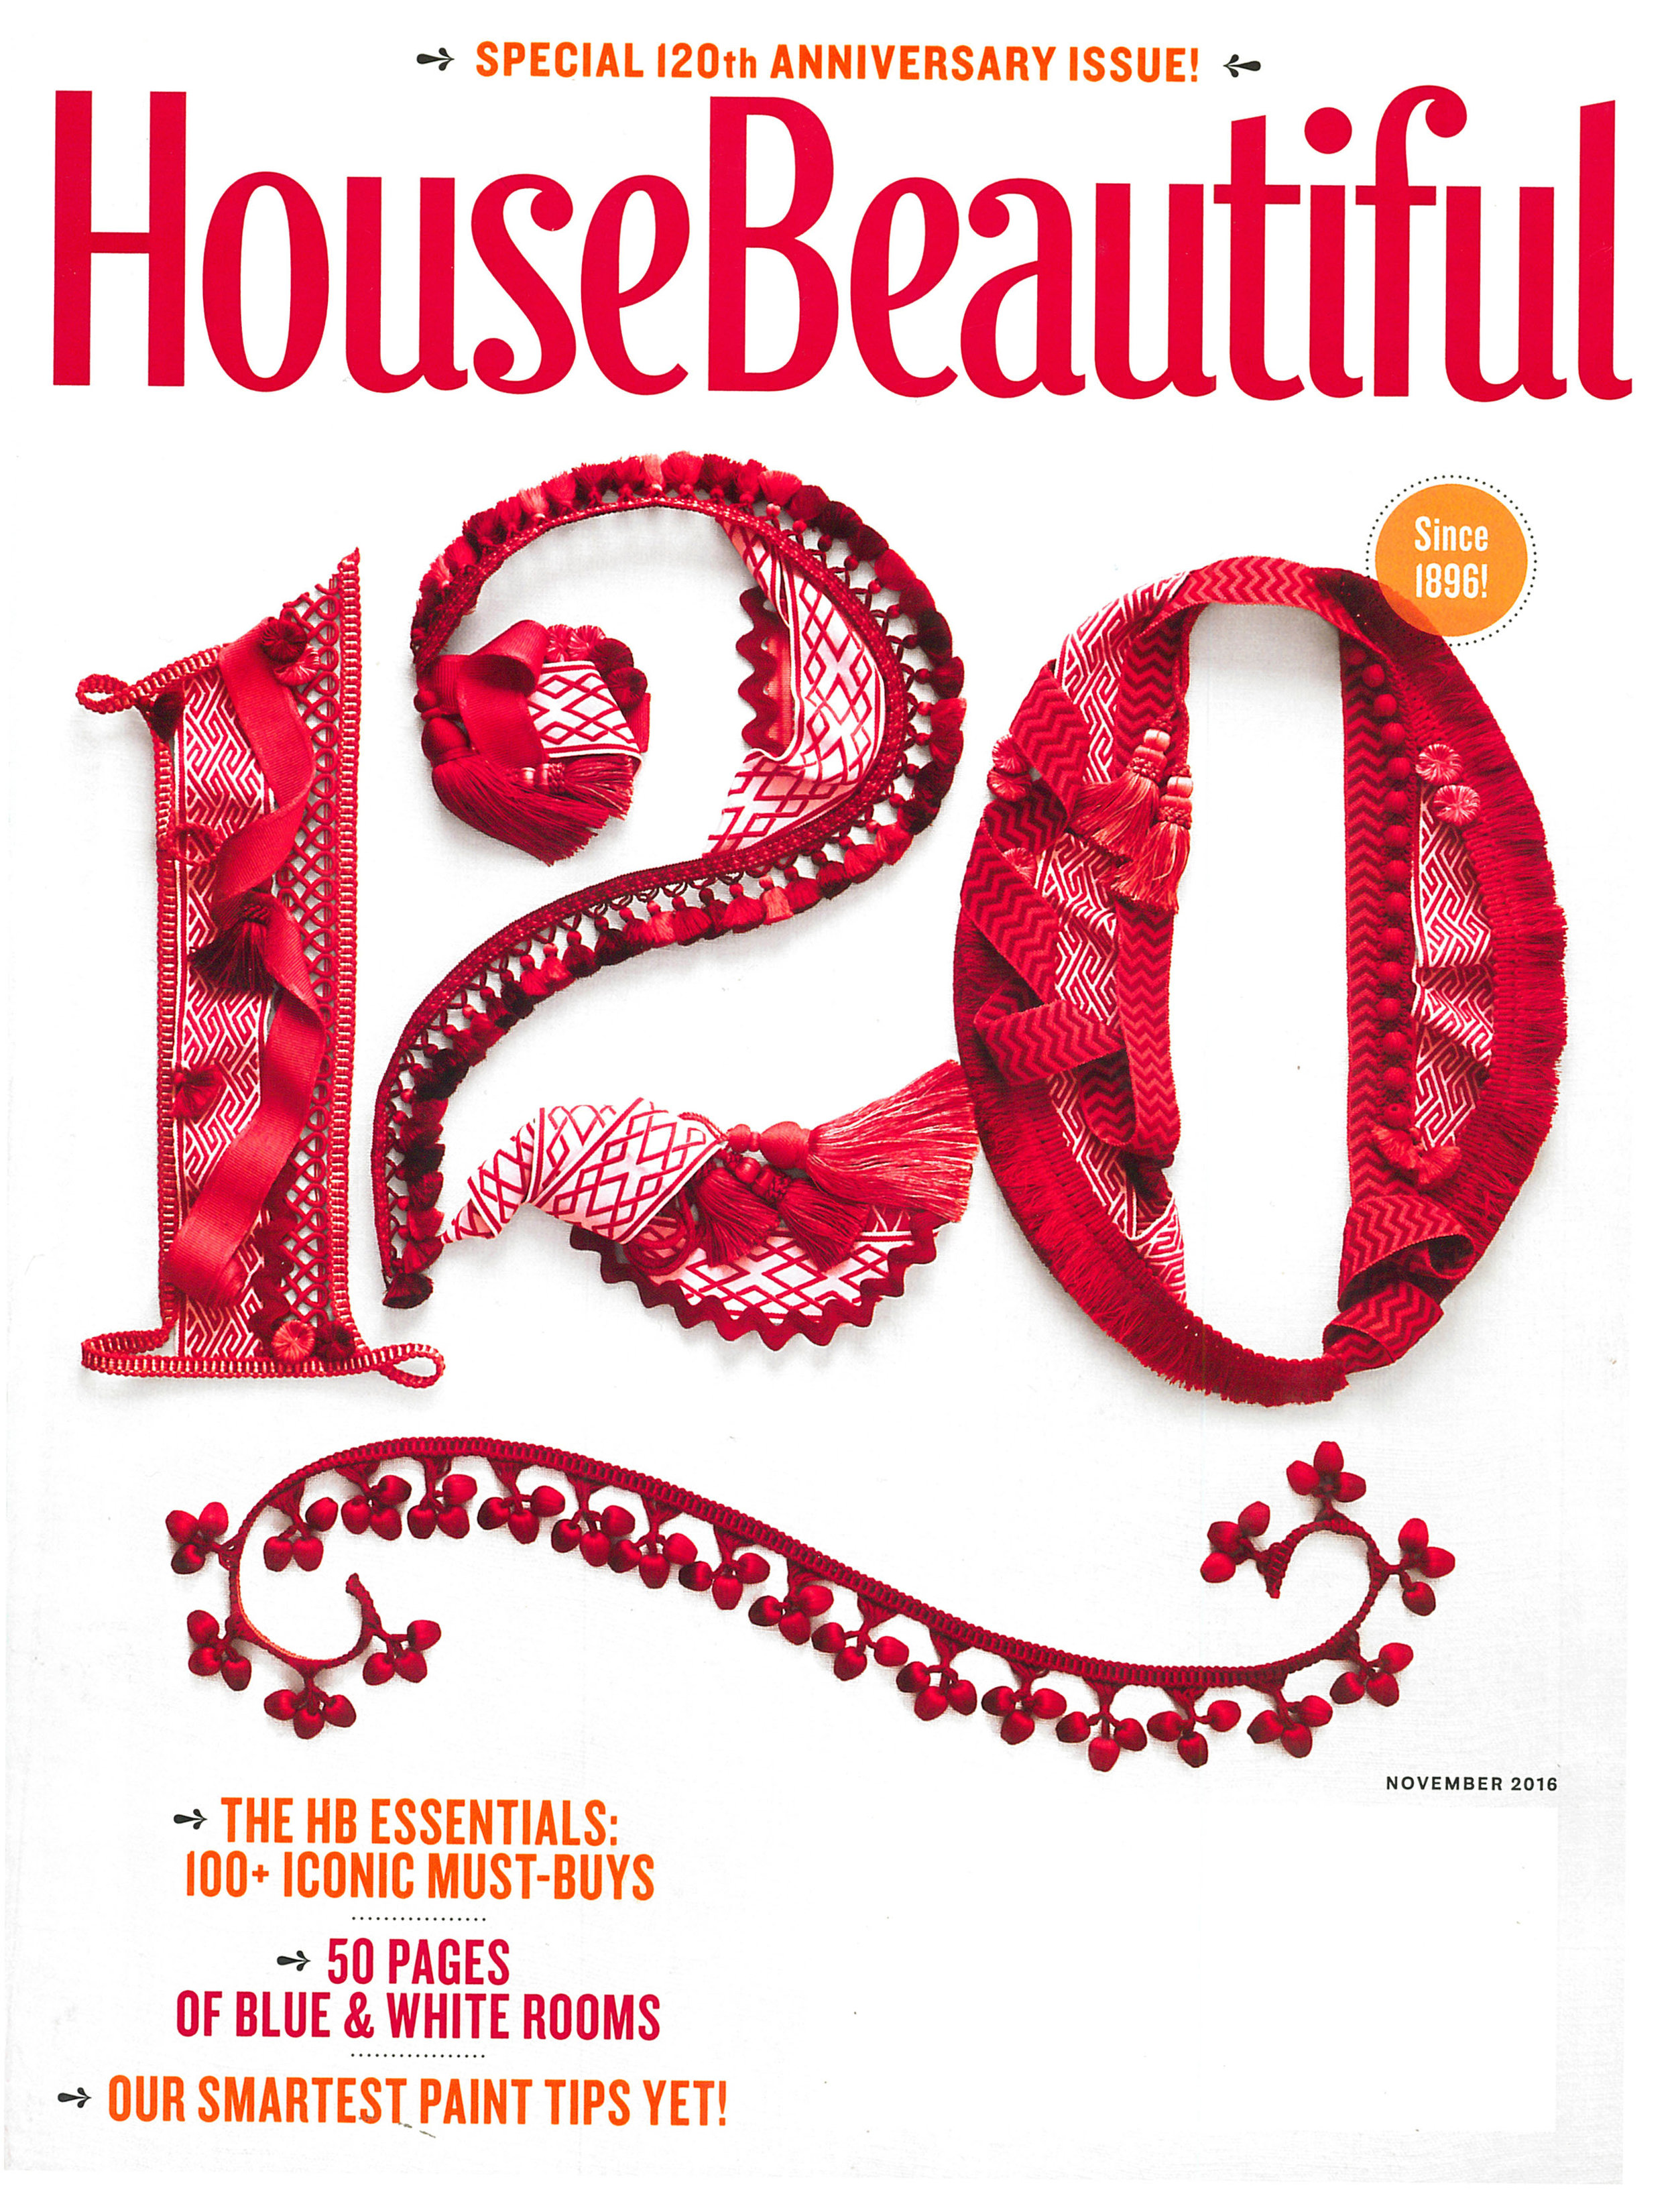 House Beautiful - November 2016